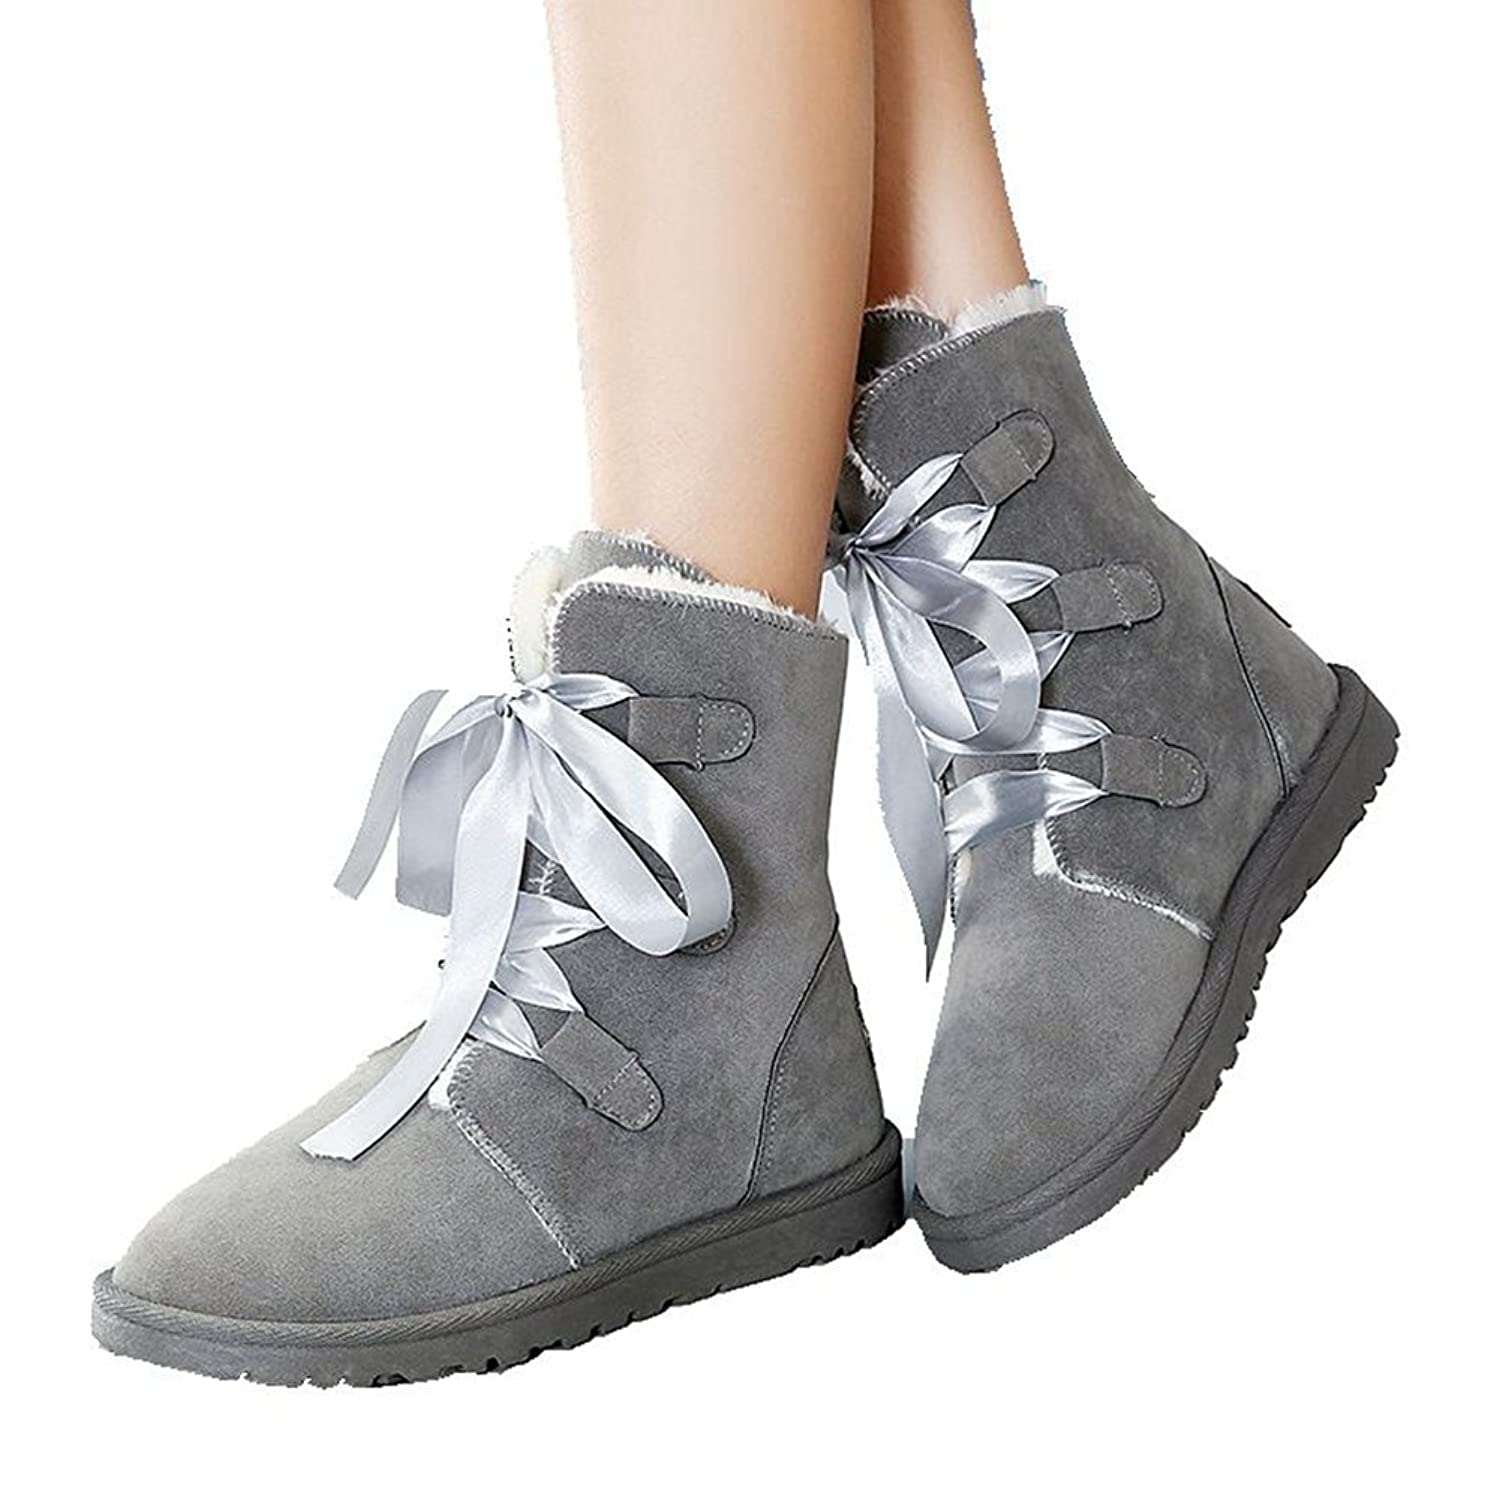 Women's Ankle Boots Winter Lace-up Warm Flat For Girl Short Fashion Snow Dress Shoes By Btrada